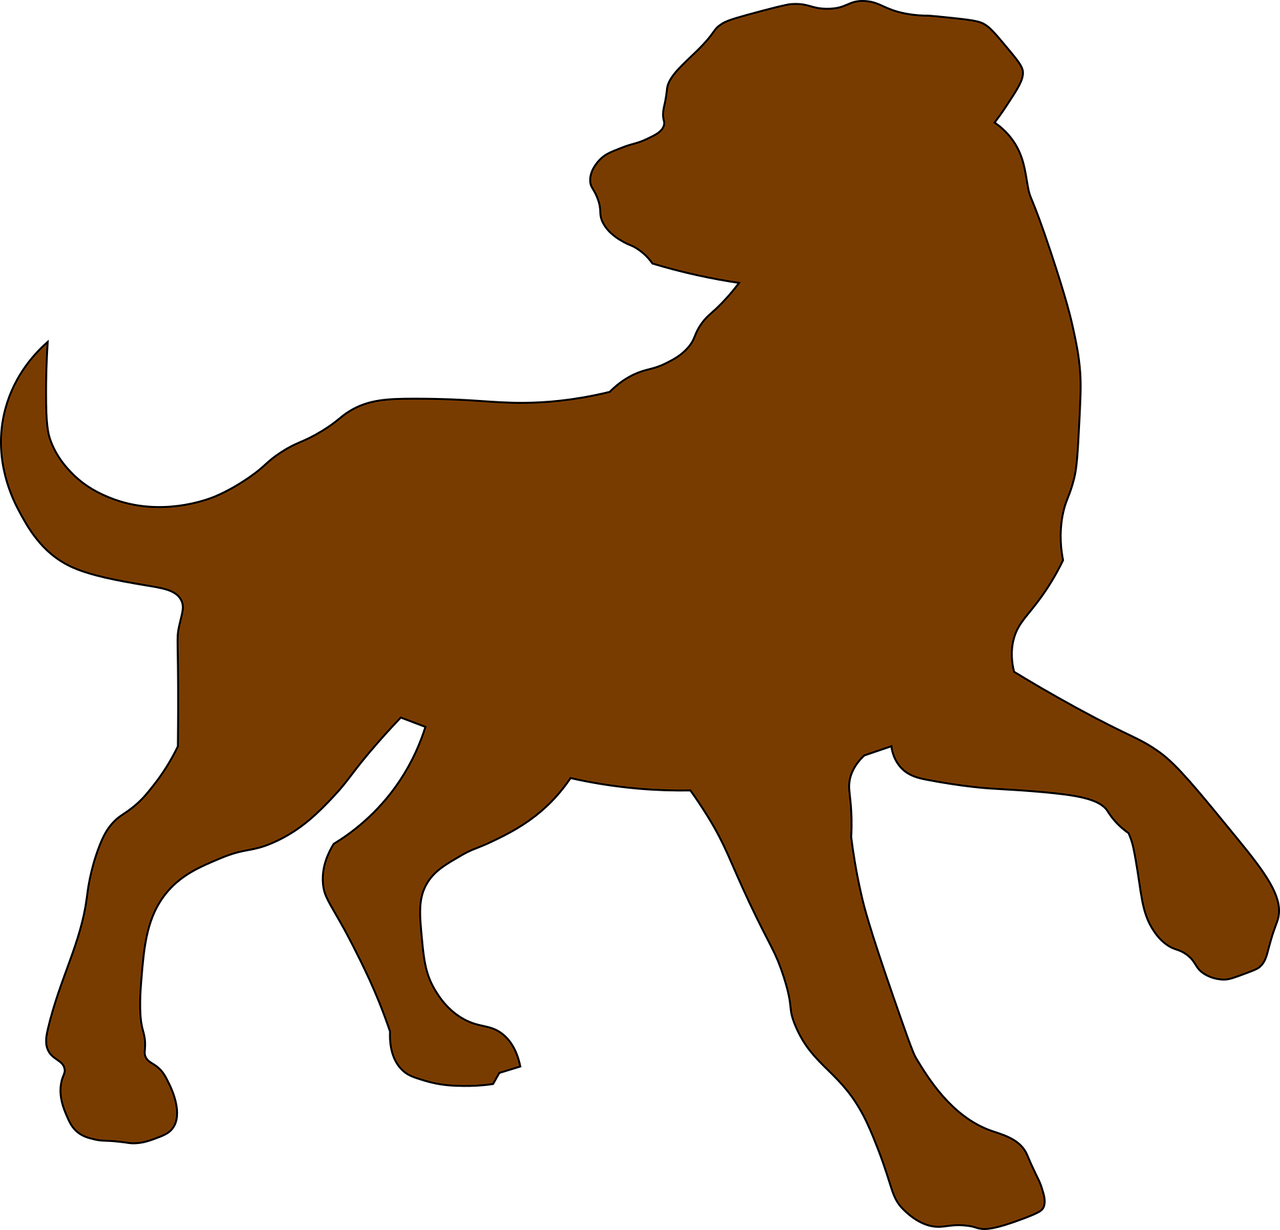 Dog clip art domestic dog. Free image on pixabay